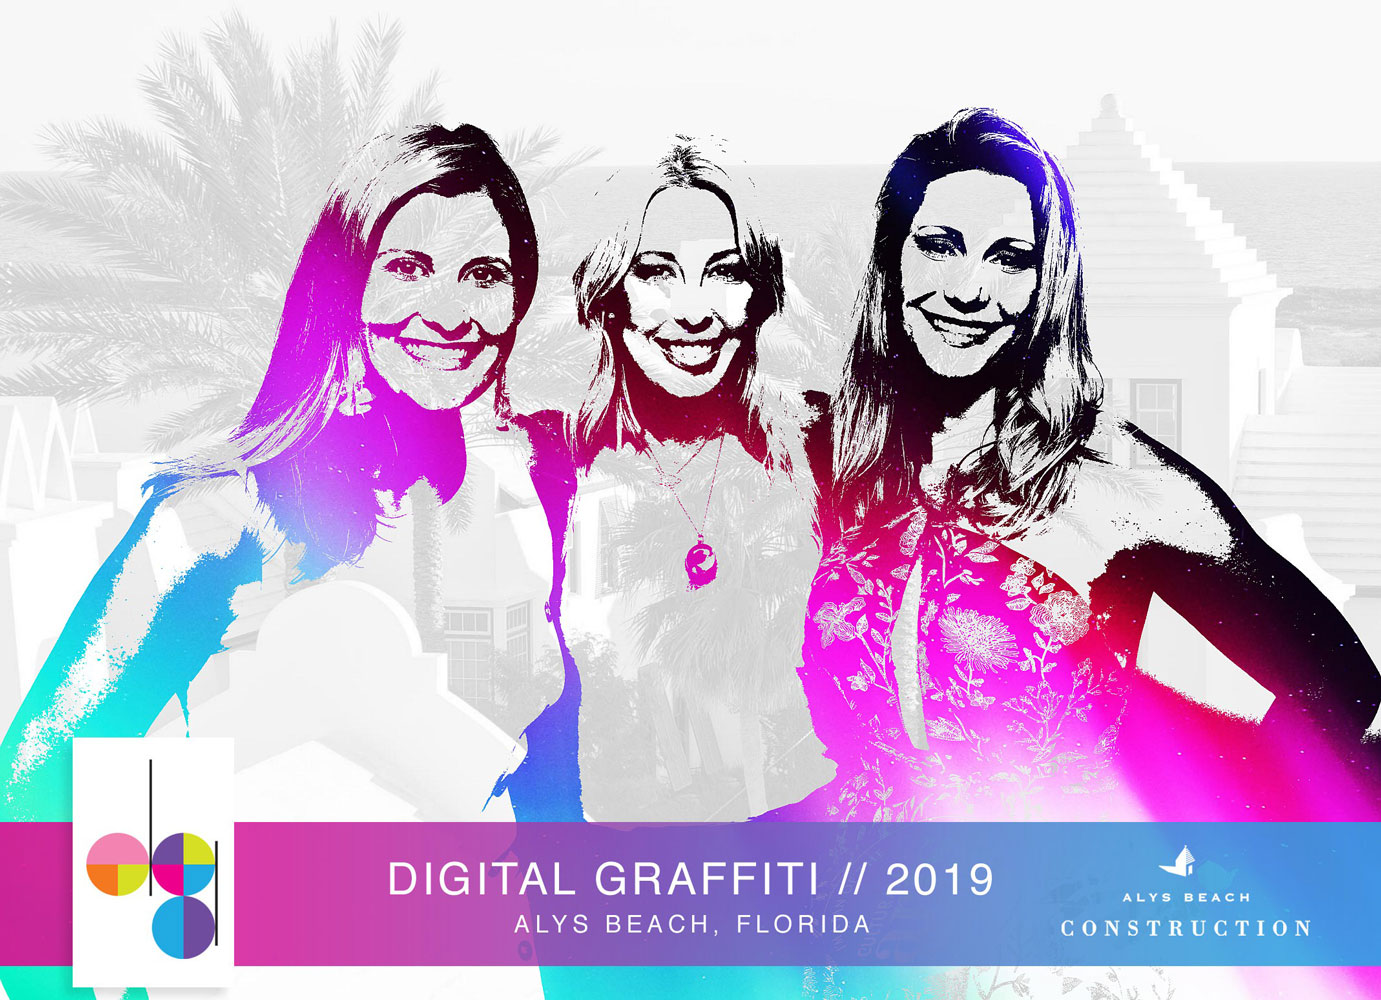 Digital-Graffiti-30a-photobooth.jpg